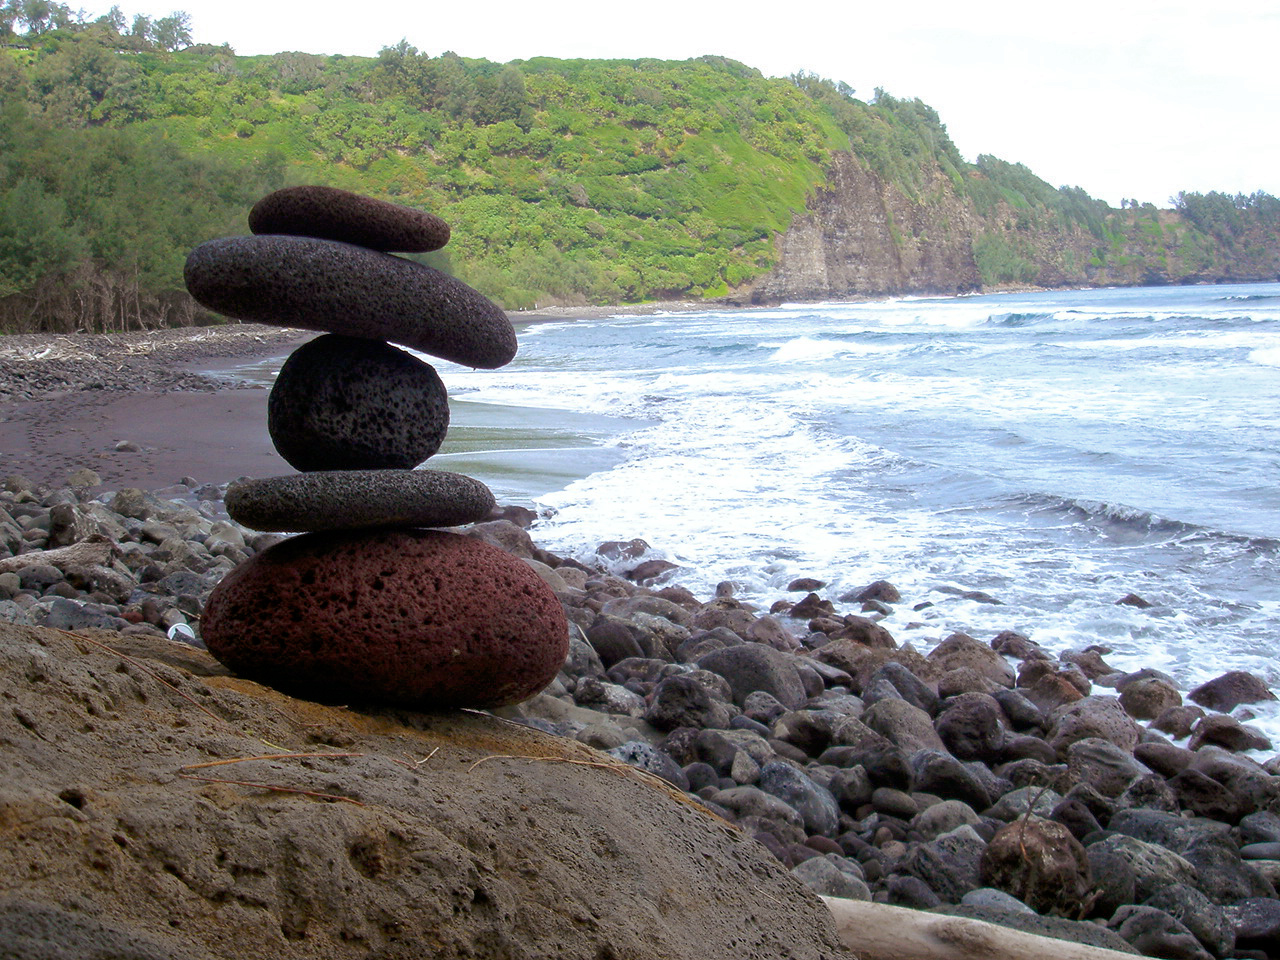 Image of stacked rocks on a beach in color